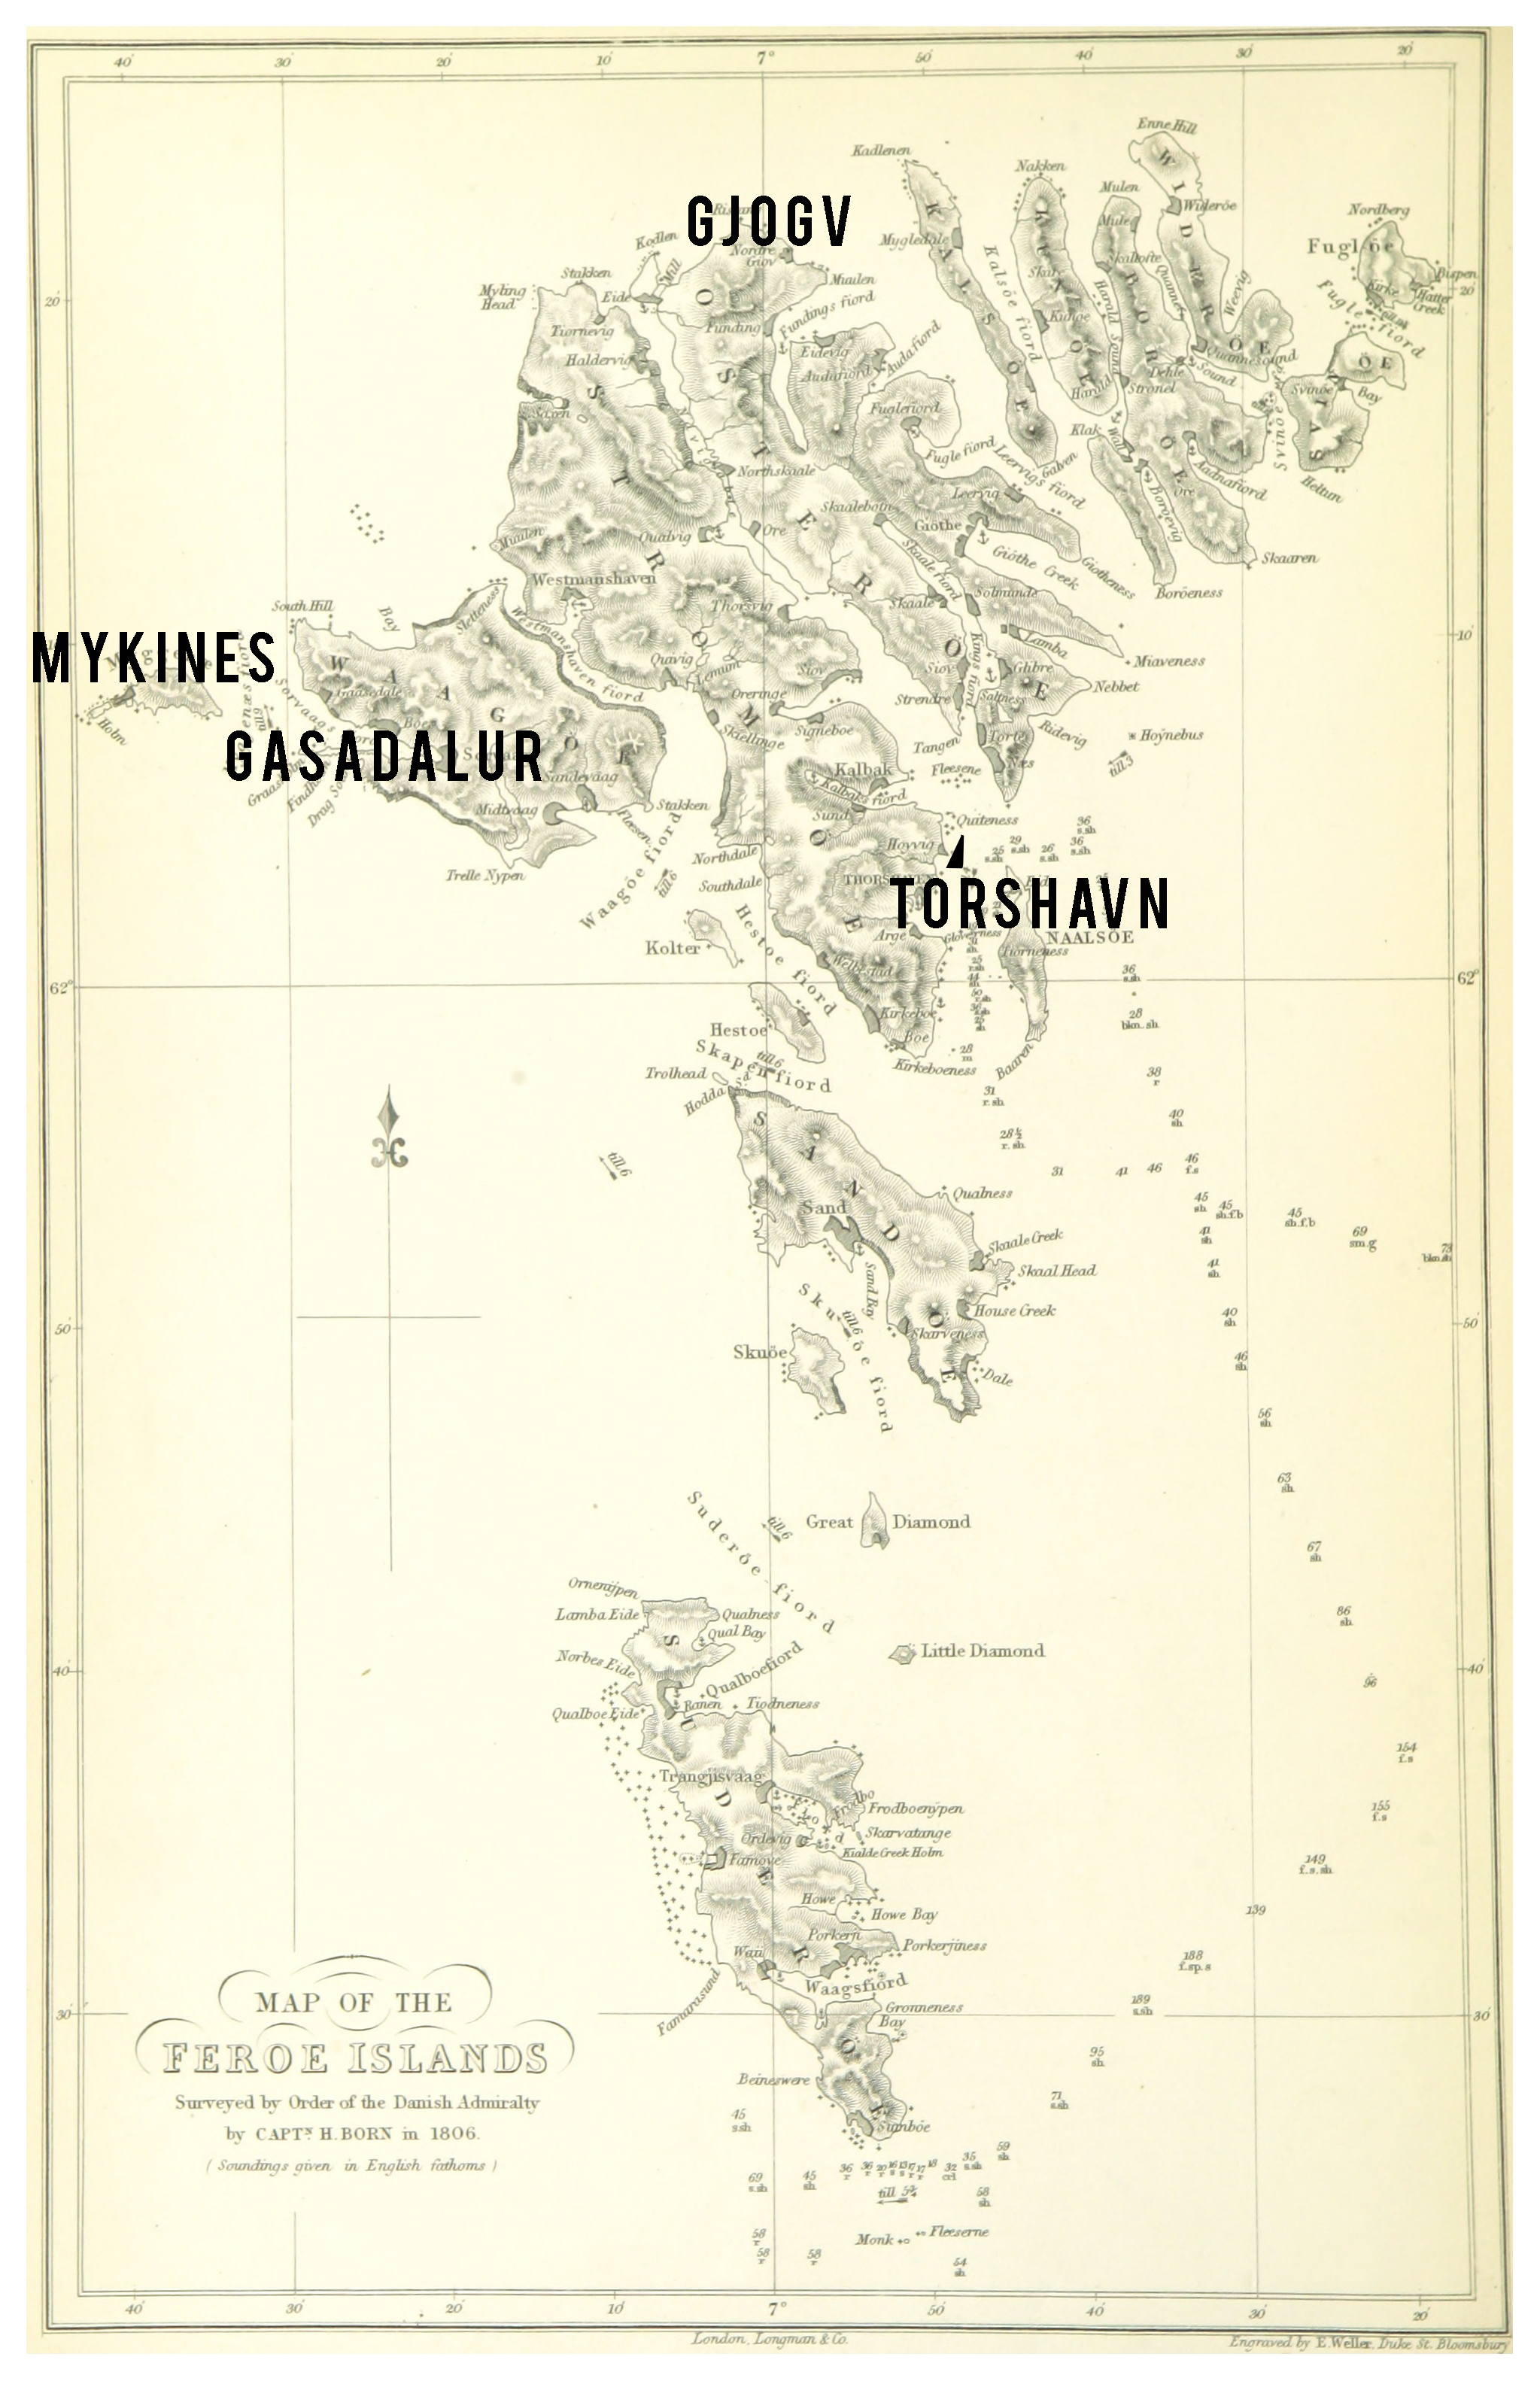 MAP_OF_THE_FAROE_ISLANDSr